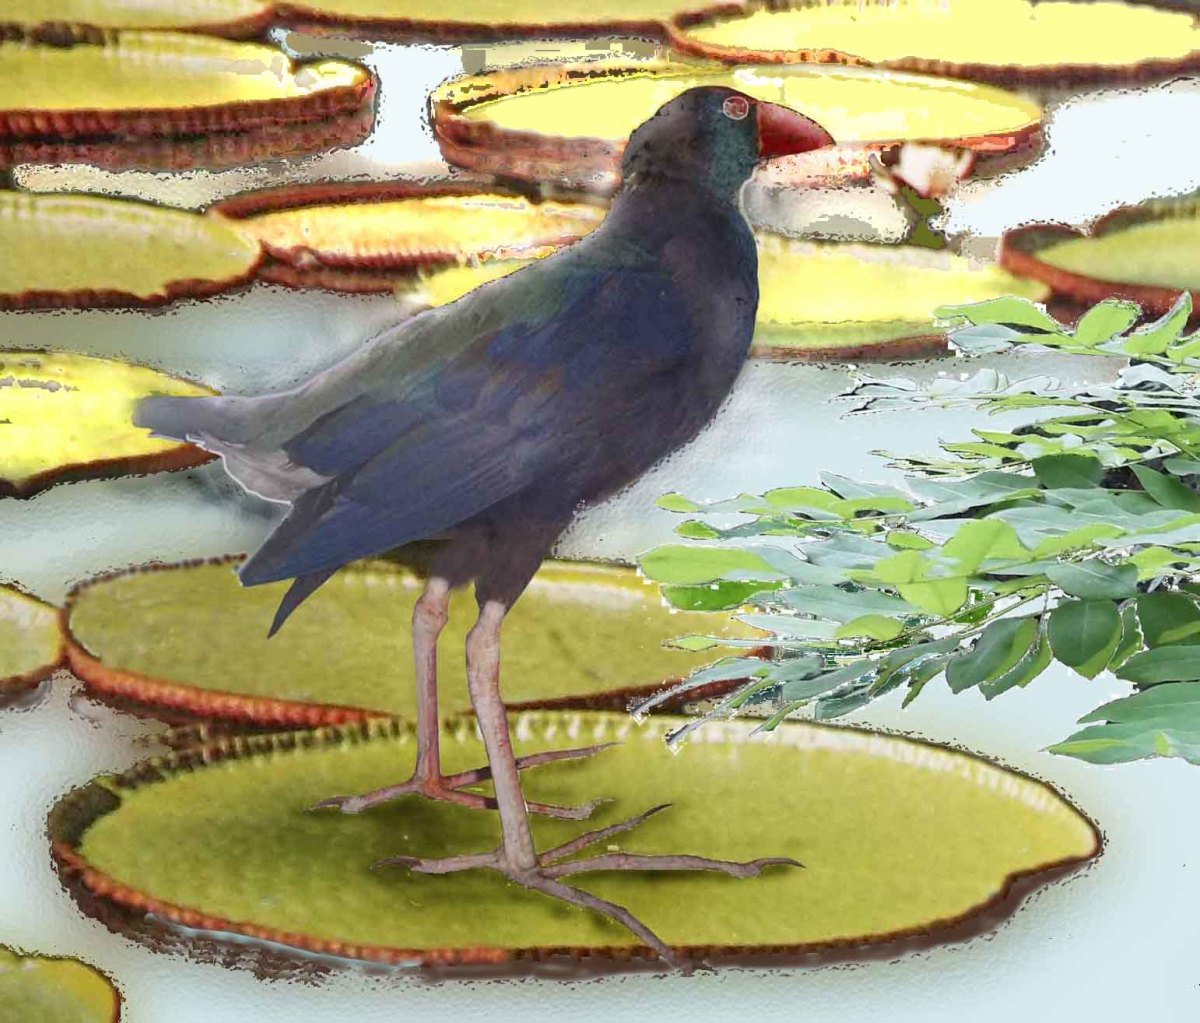 Kenya - birdwatcher's paradise: The African Purple Gallinule and Saddle billed Stork